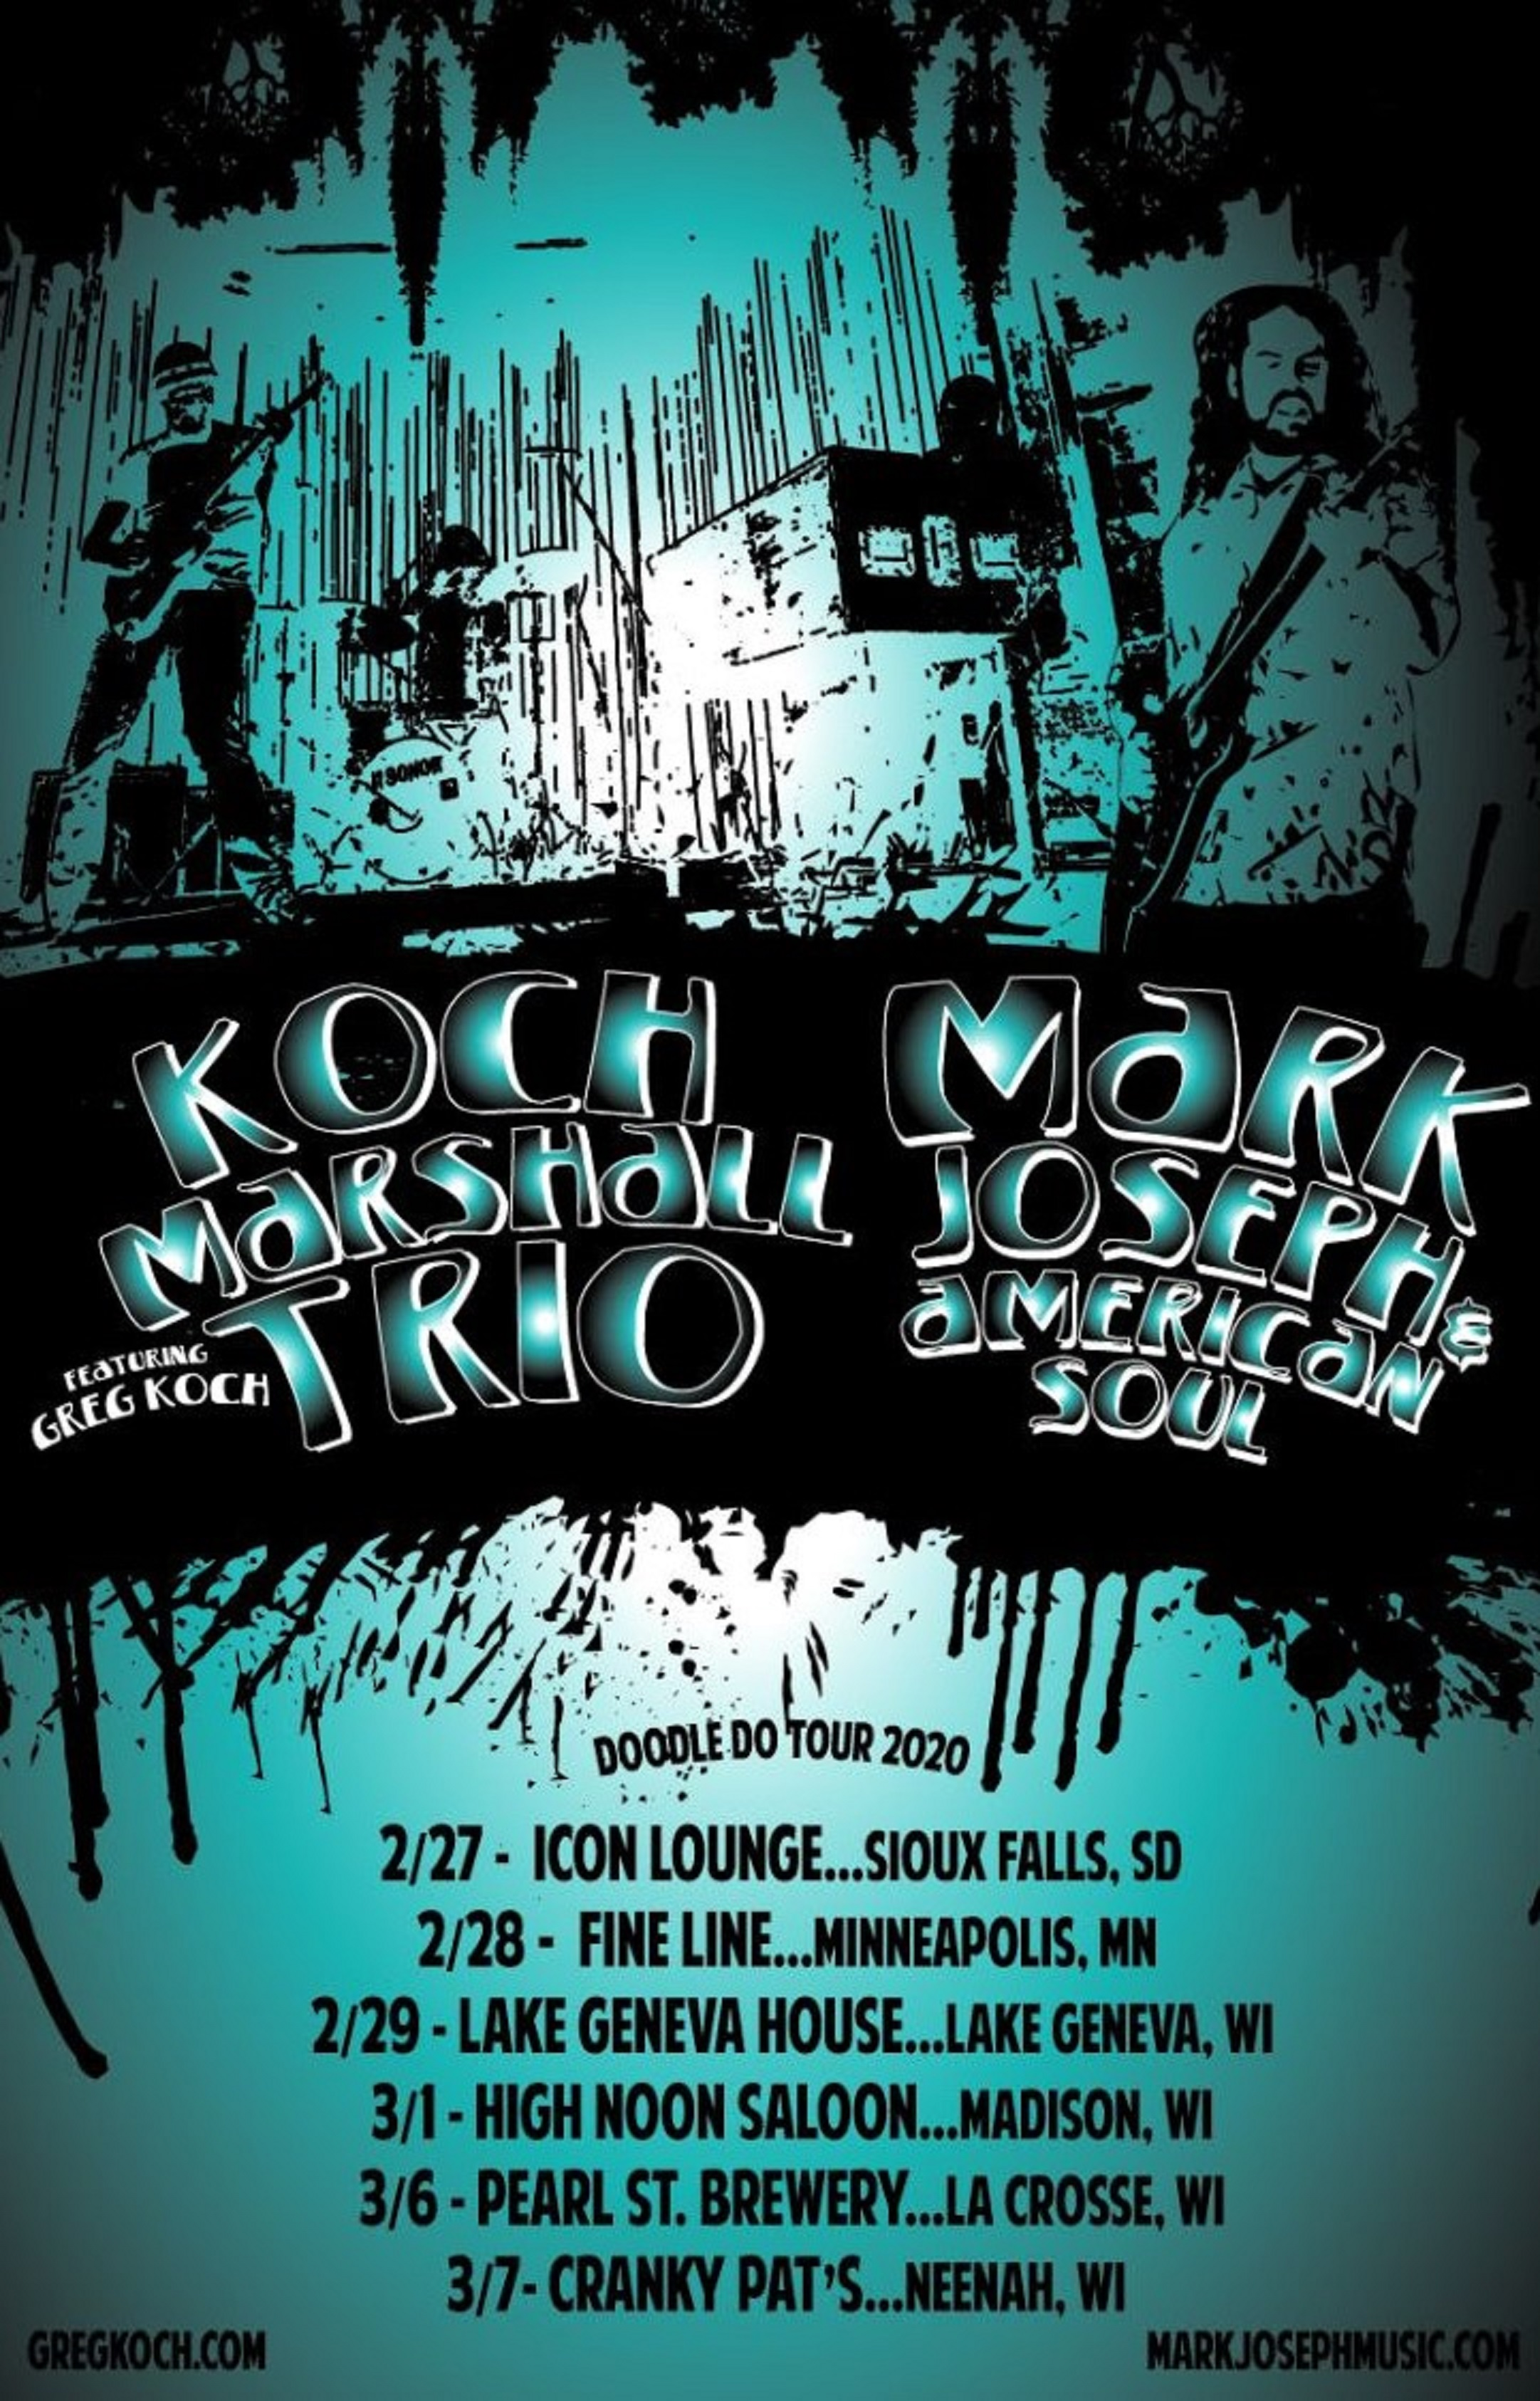 Koch-Marshall Trio and Mark Joseph & American Soul on Tour